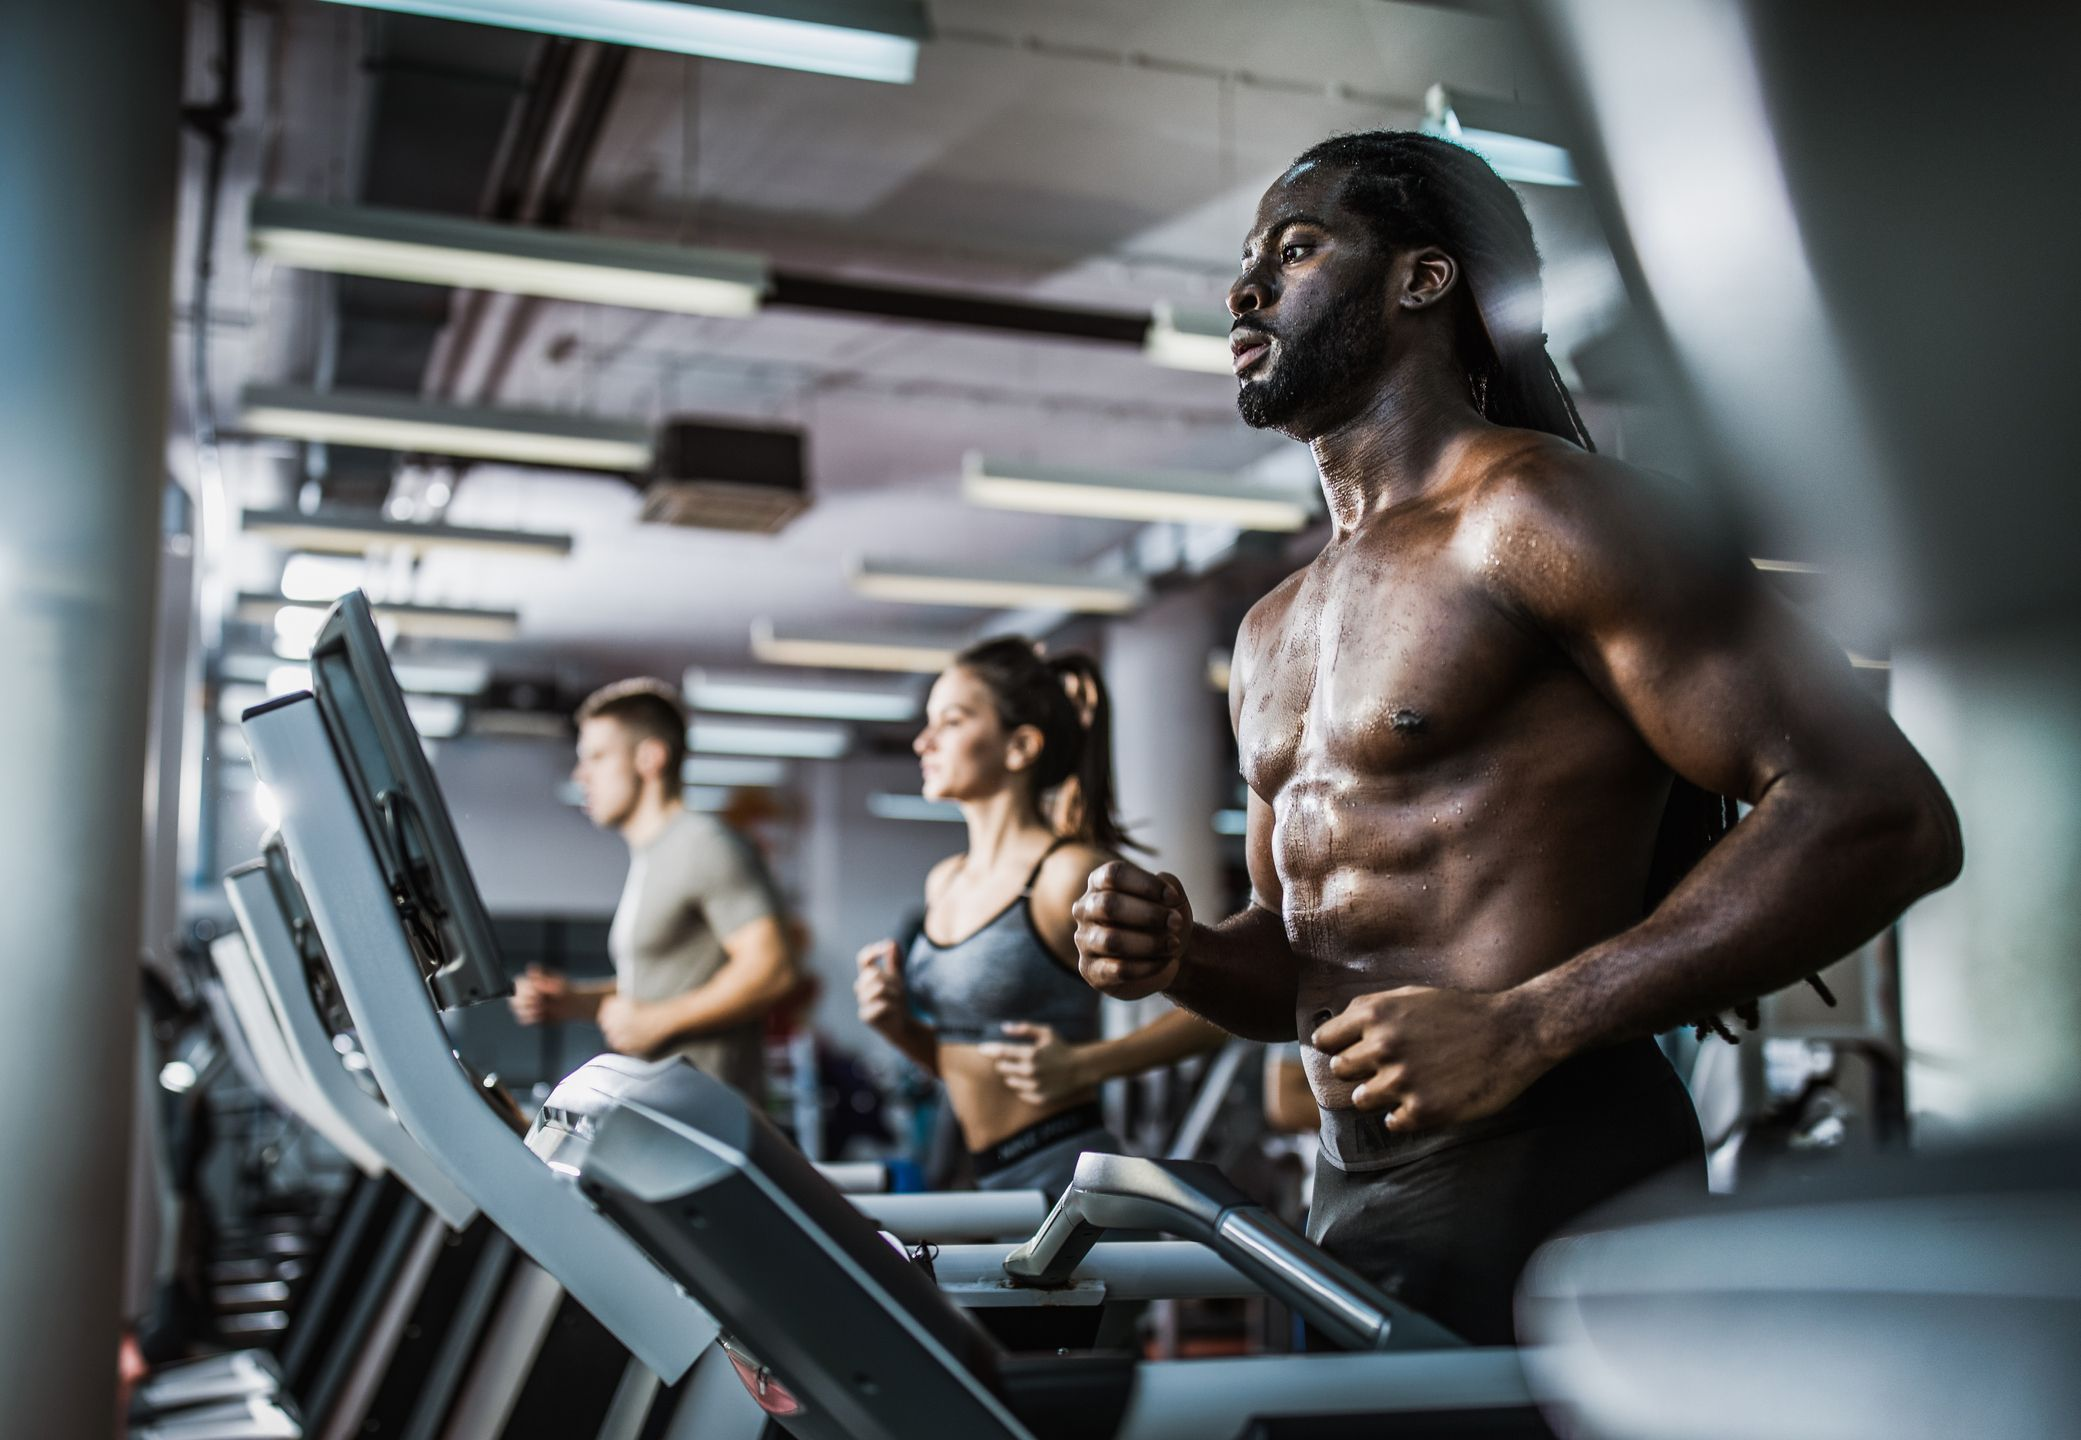 treadmill workout lose belly fat and build musclemuscular build black man warming up on treadmill in a health club